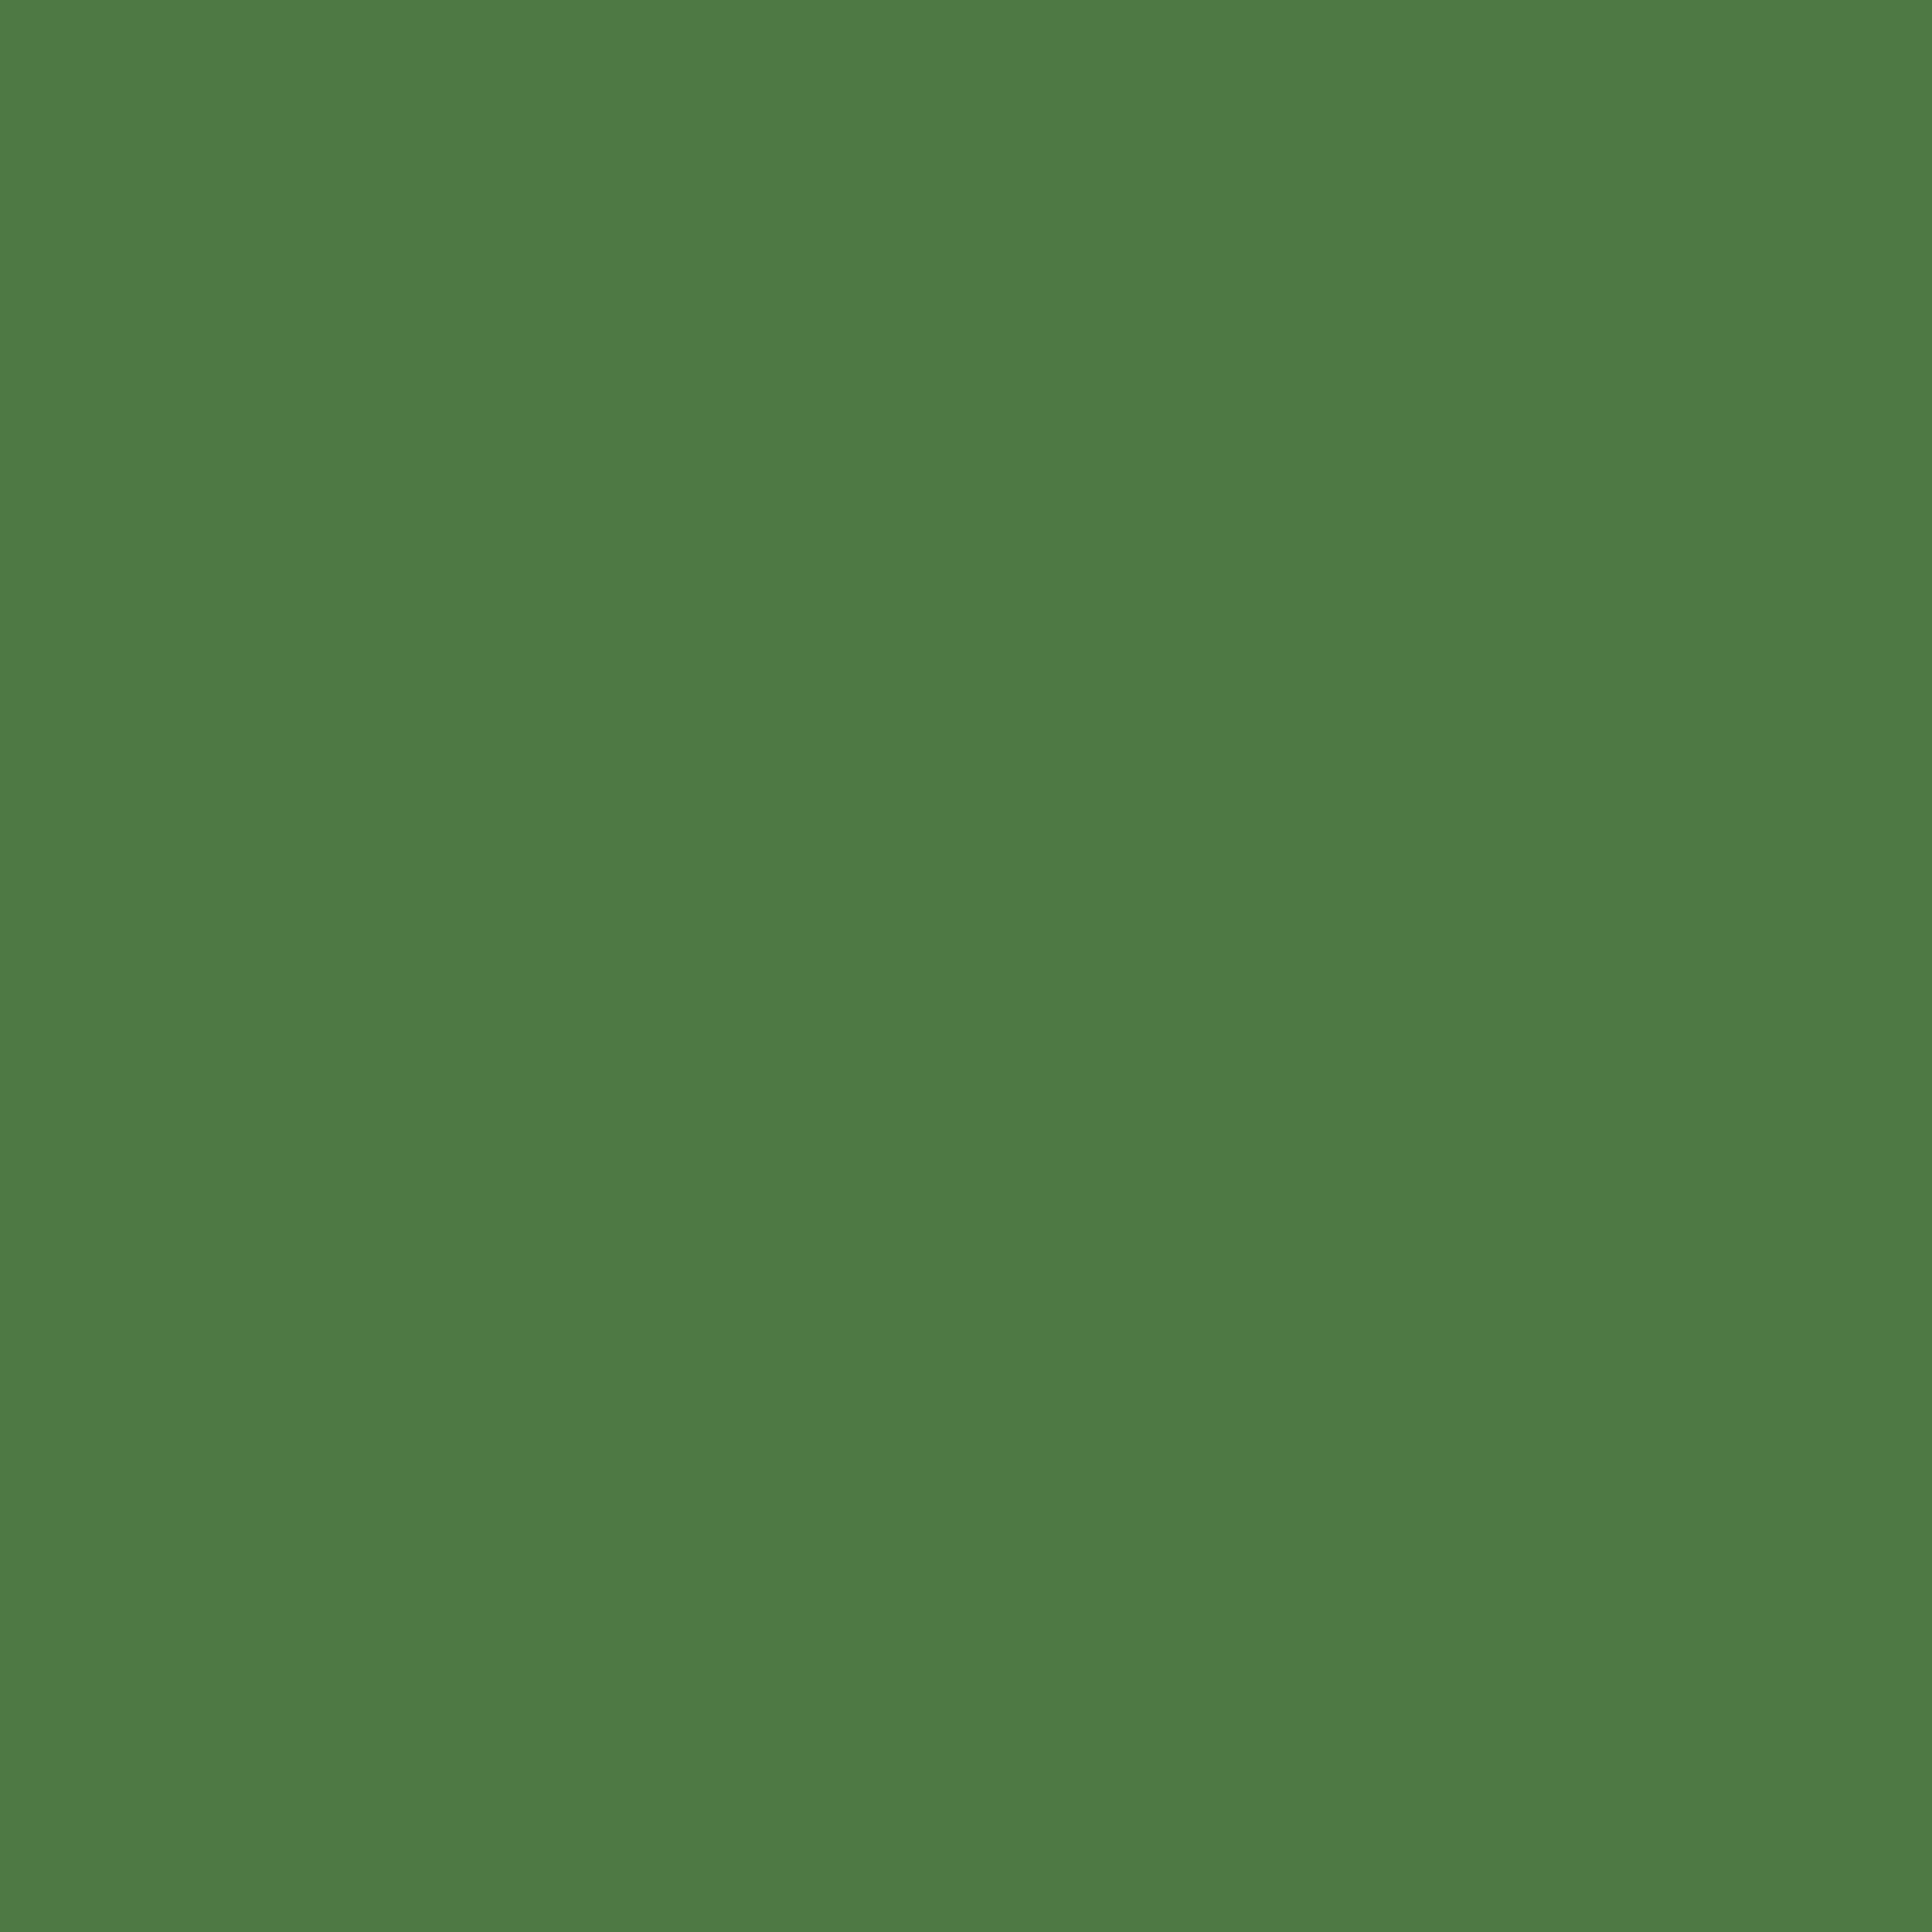 2732x2732 Fern Green Solid Color Background